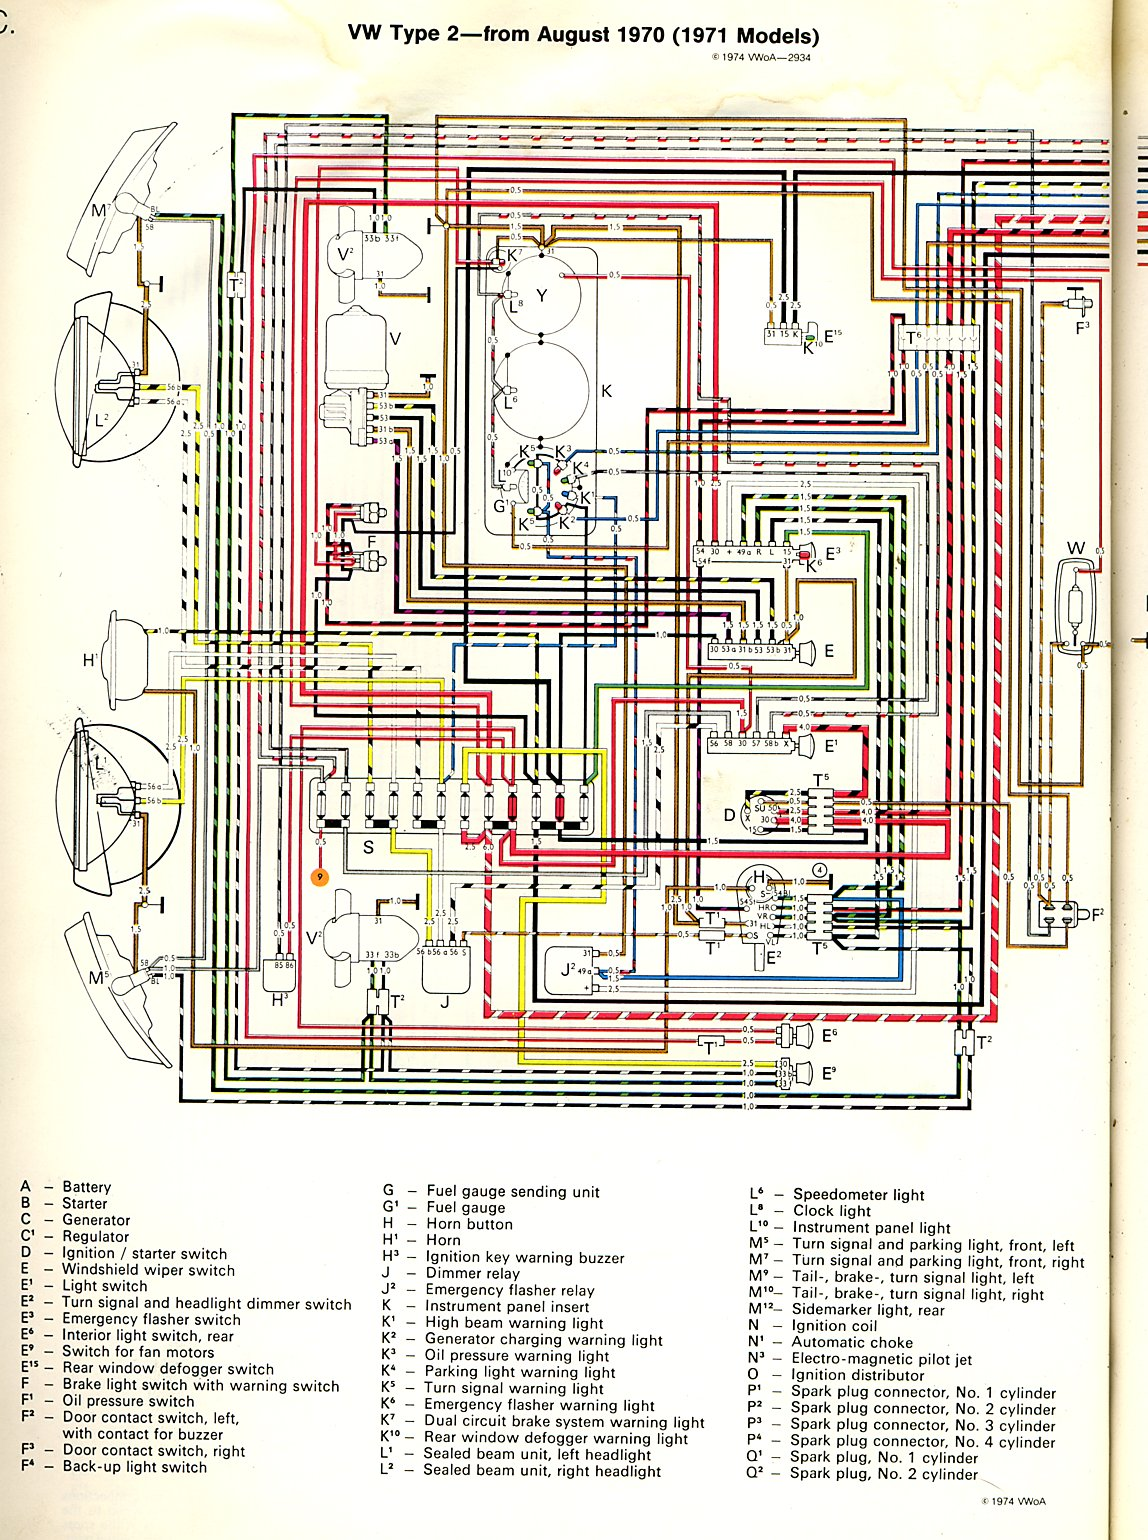 1971 F250 Headlight Wiring Diagram Doing The New Way 1974 Ford F 250 4x4 Thesamba Com Type 2 Diagrams Rh 2005 Radio